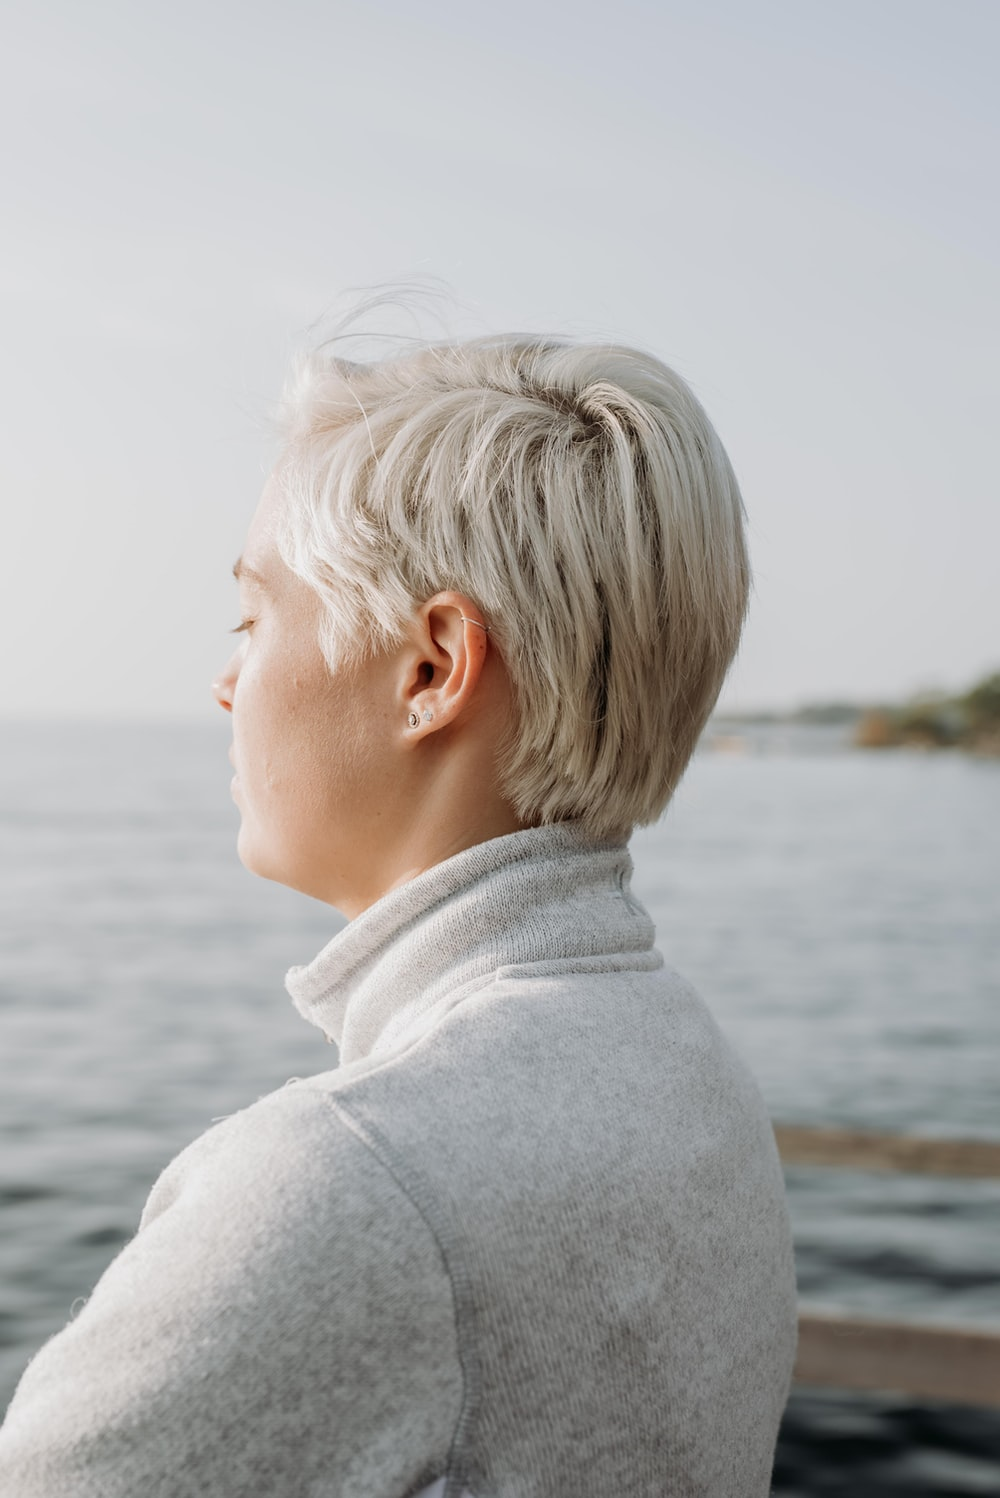 woman with blonde hair wearing gray sweater at dock